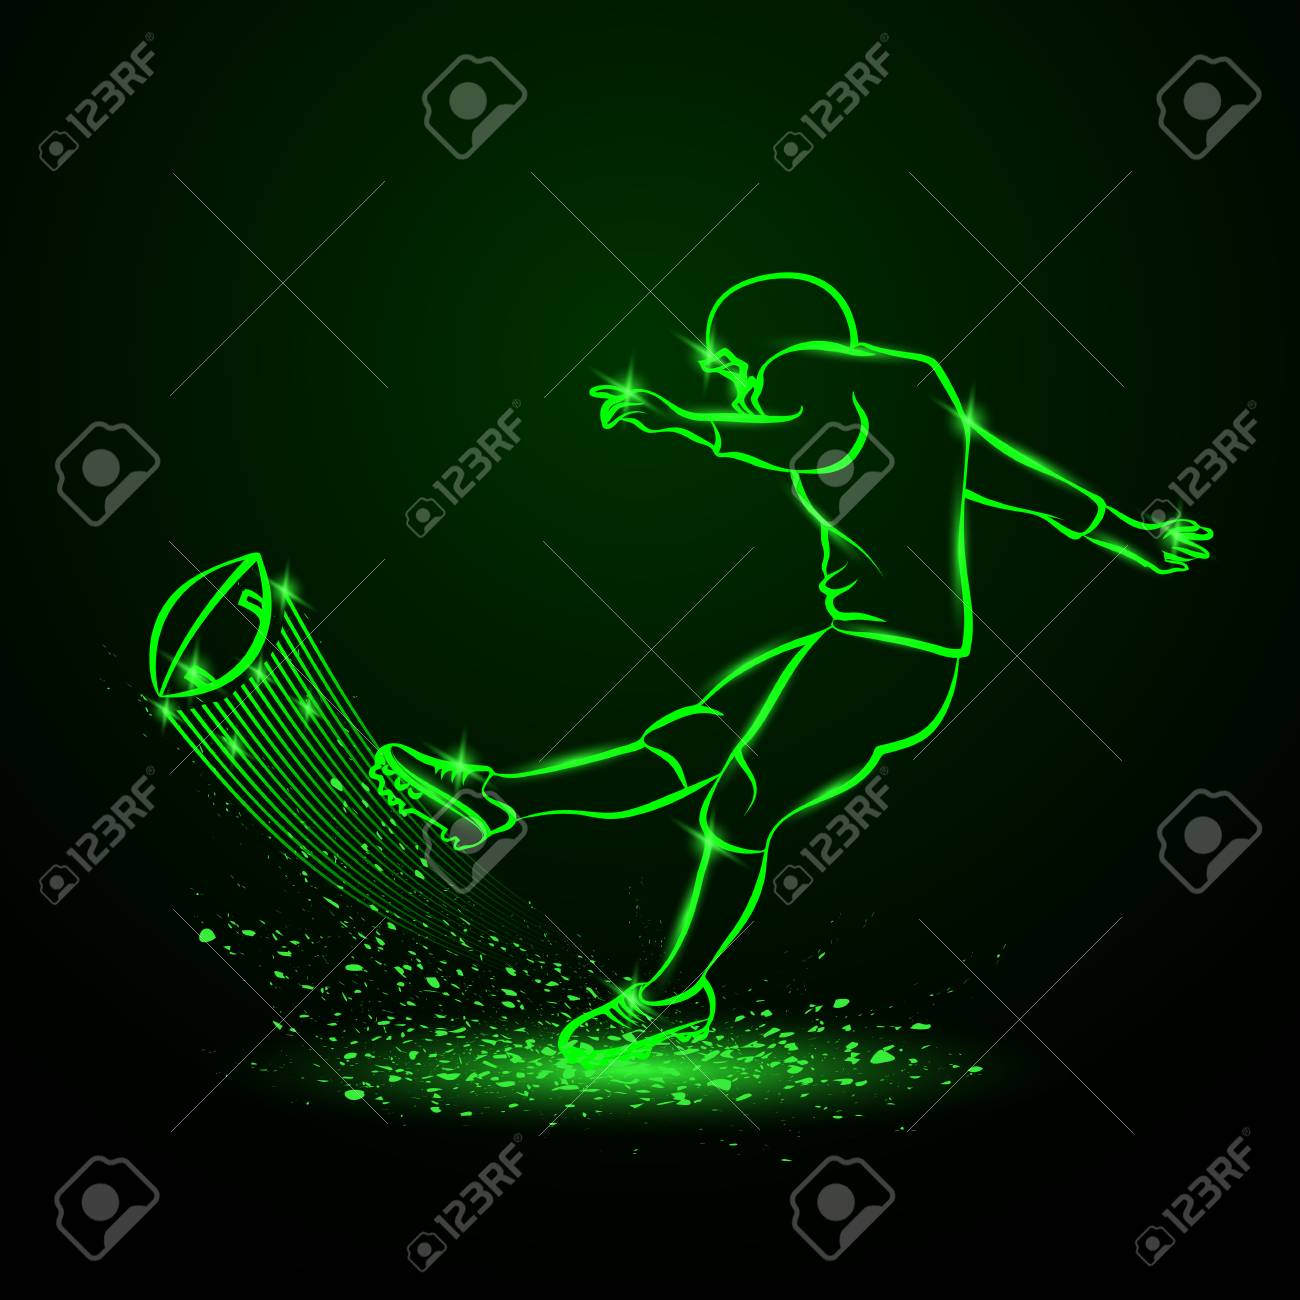 American Football Kicker Hits The Ball Green Neon Sport 1300x1300